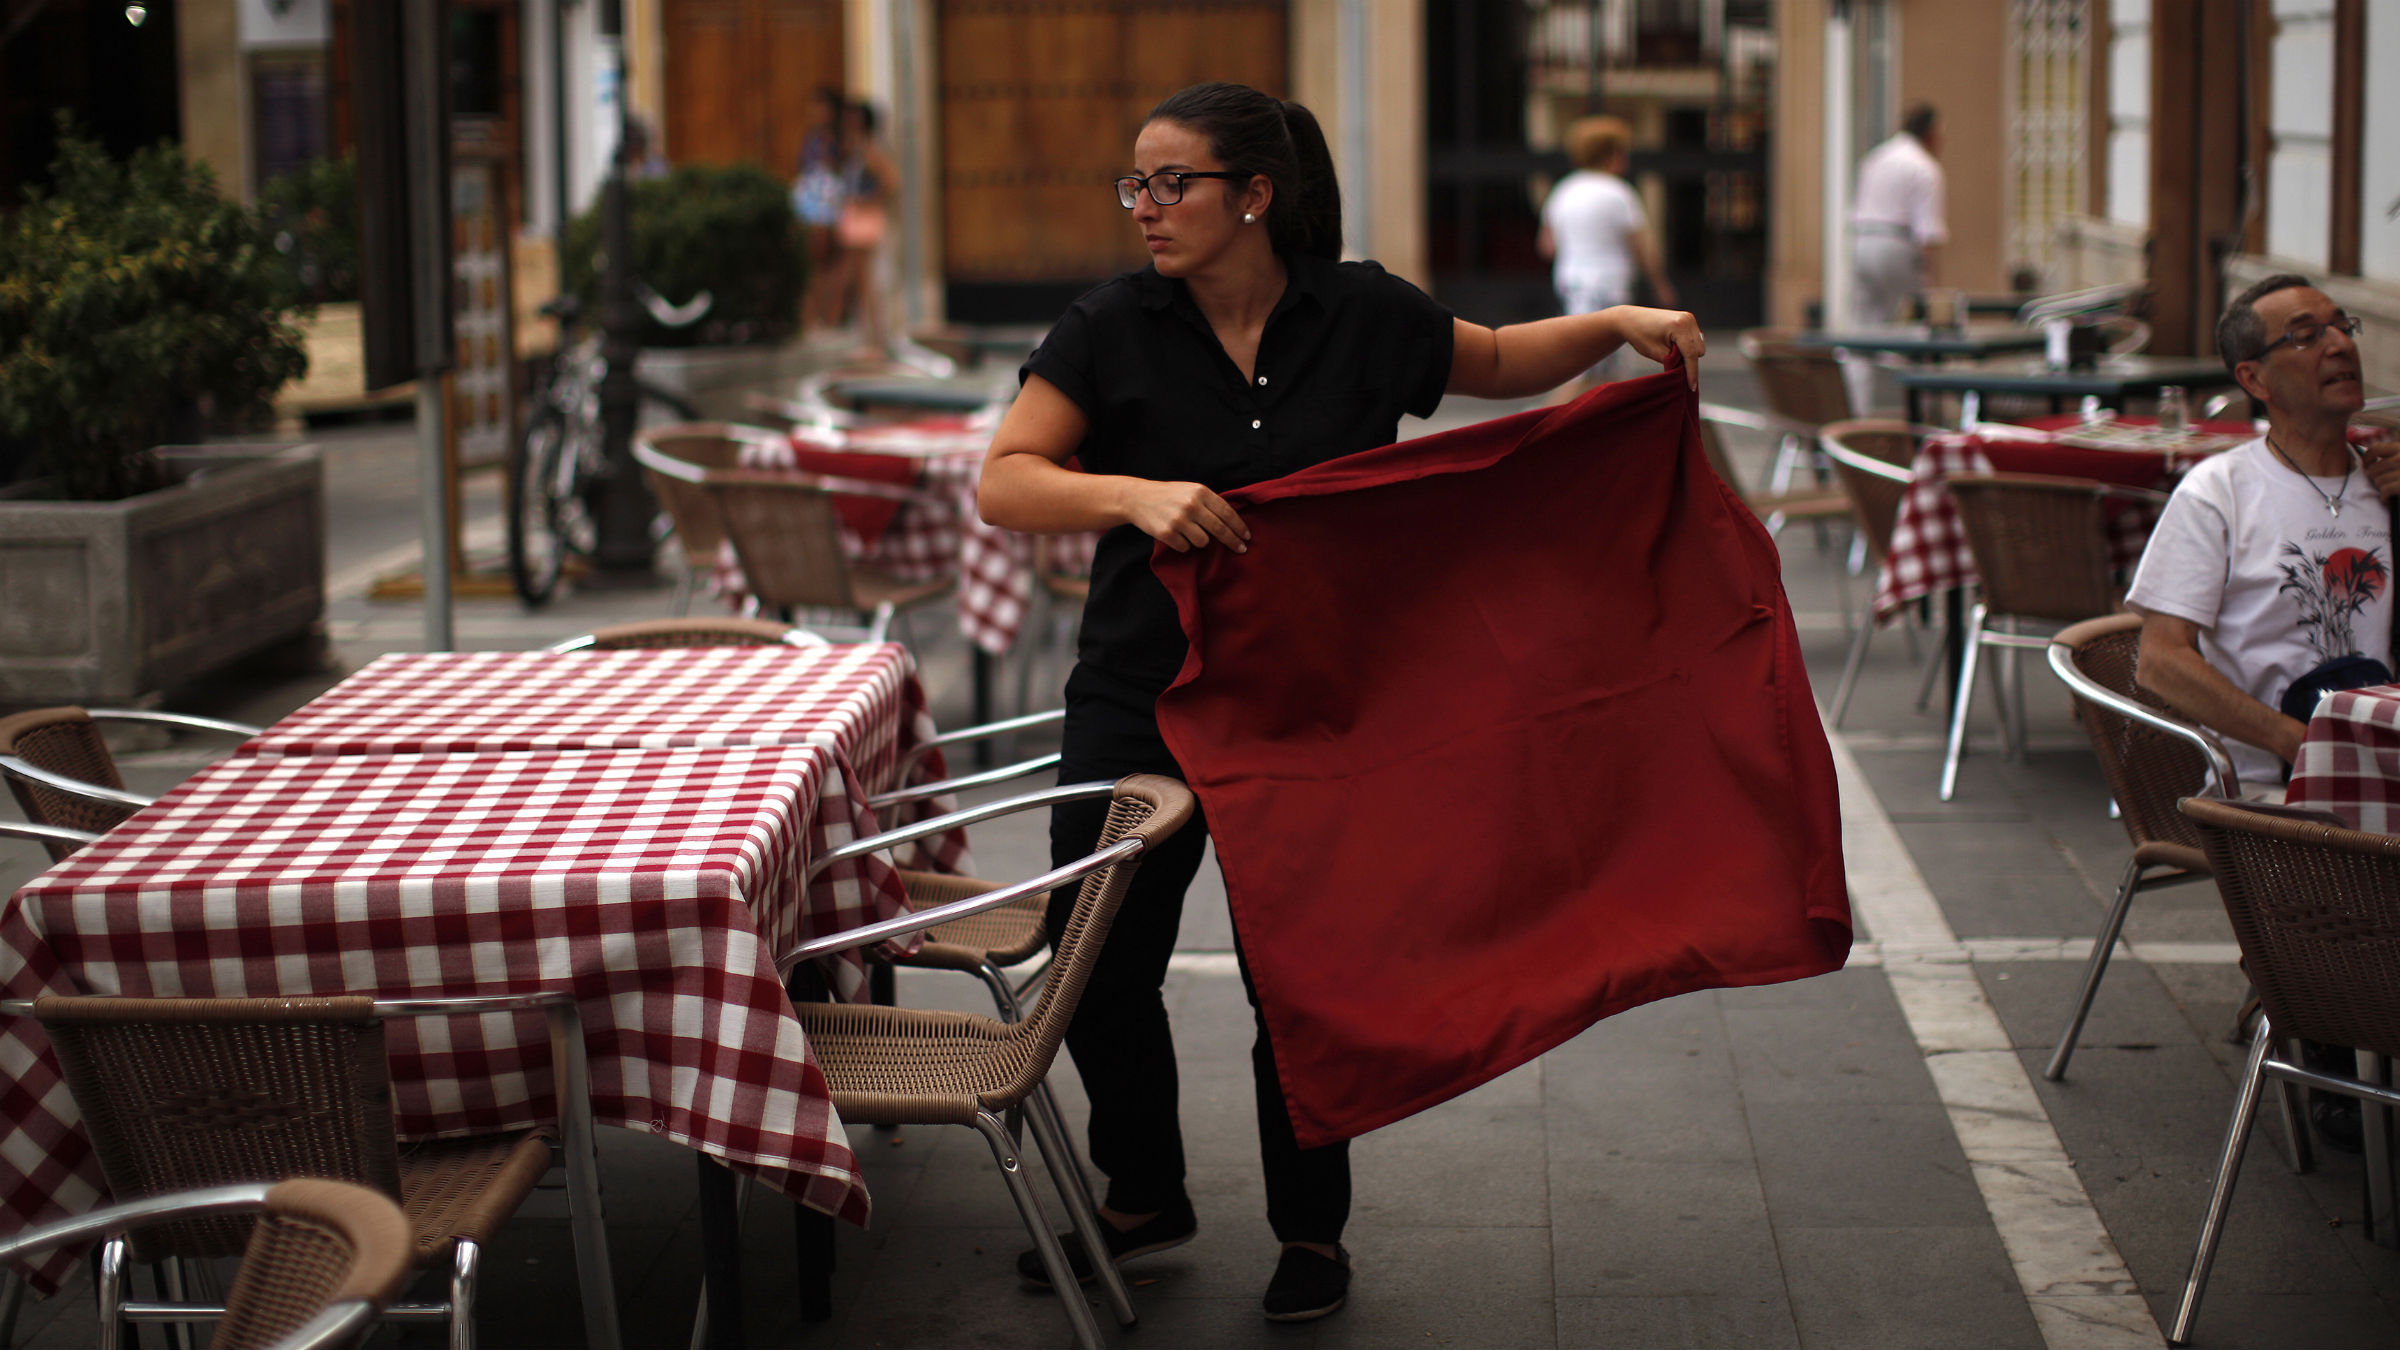 "Marina Alcantara, 29, an unemployed English teacher who has been hired as a temporary waitress since last July 24, arranges a tablecloth at the terrace of the ""Casino de Ronda"" restaurant in downtown Ronda restaurant in downtown Ronda, near Malaga, southern Spain July 24, 2014. Spain's unemployment rate fell to its lowest level in two years in the second quarter, data showed on Thursday, lifted by strong job creation in the services sector and adding to hopes of a sustained economic turnaround. Unemployment fell to 24.5 percent from 25.9 percent a quarter earlier, the National Statistics Institute said."